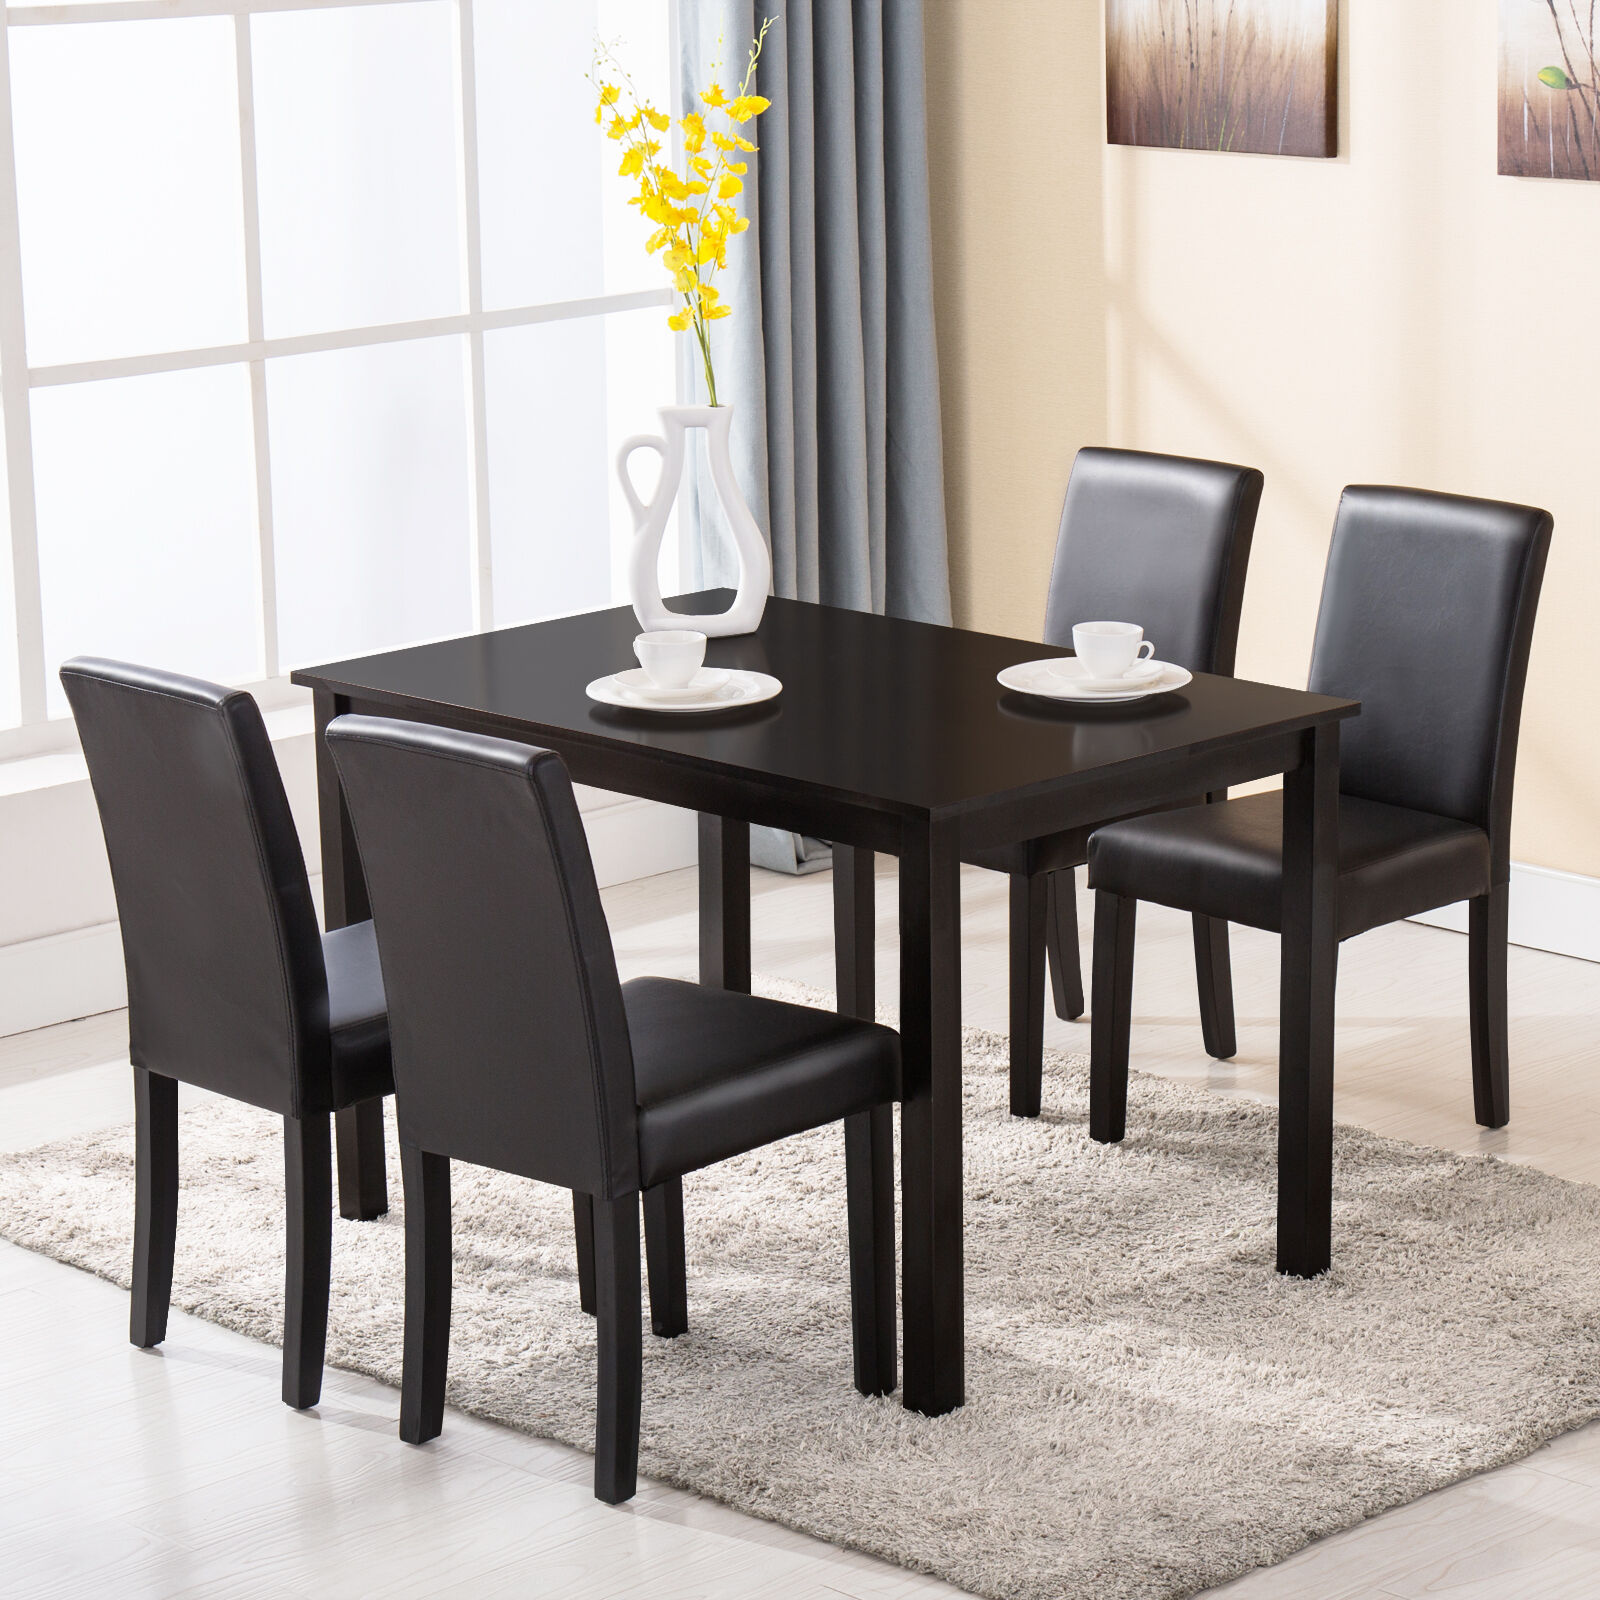 5 piece dining table set 4 chairs wood kitchen dinette for 4 kitchen table chairs